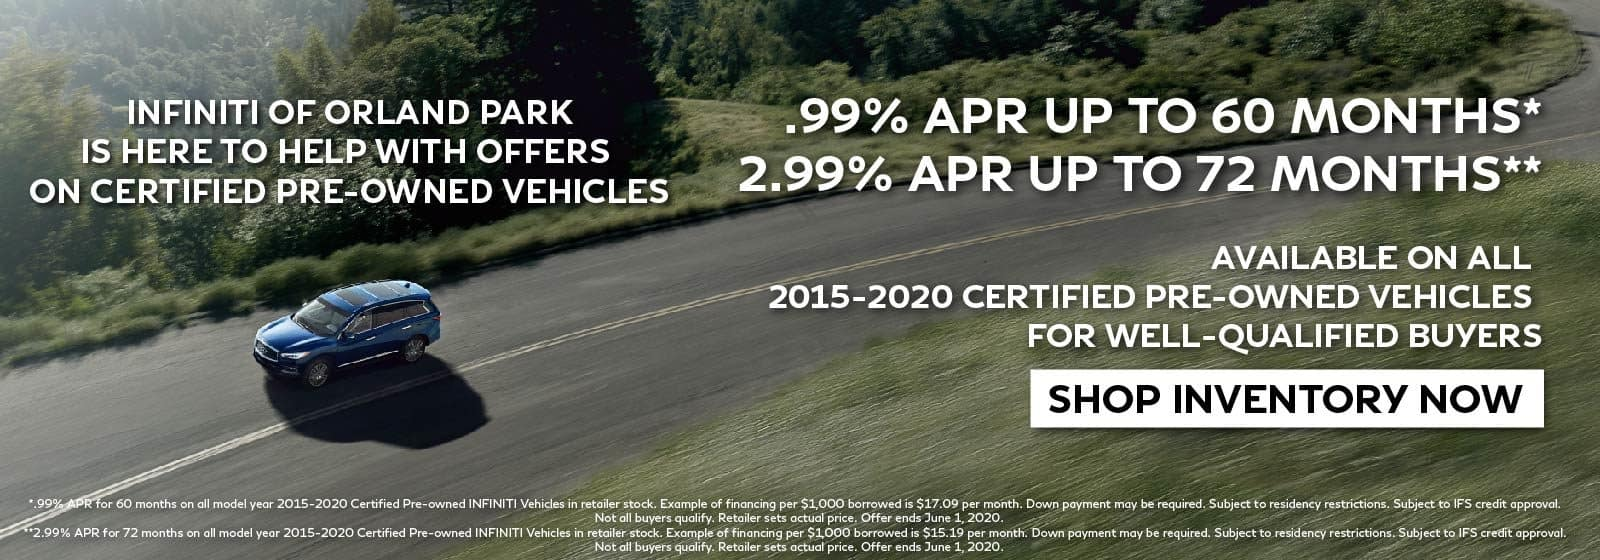 INFINITI or Orland Park. CPO Offer.